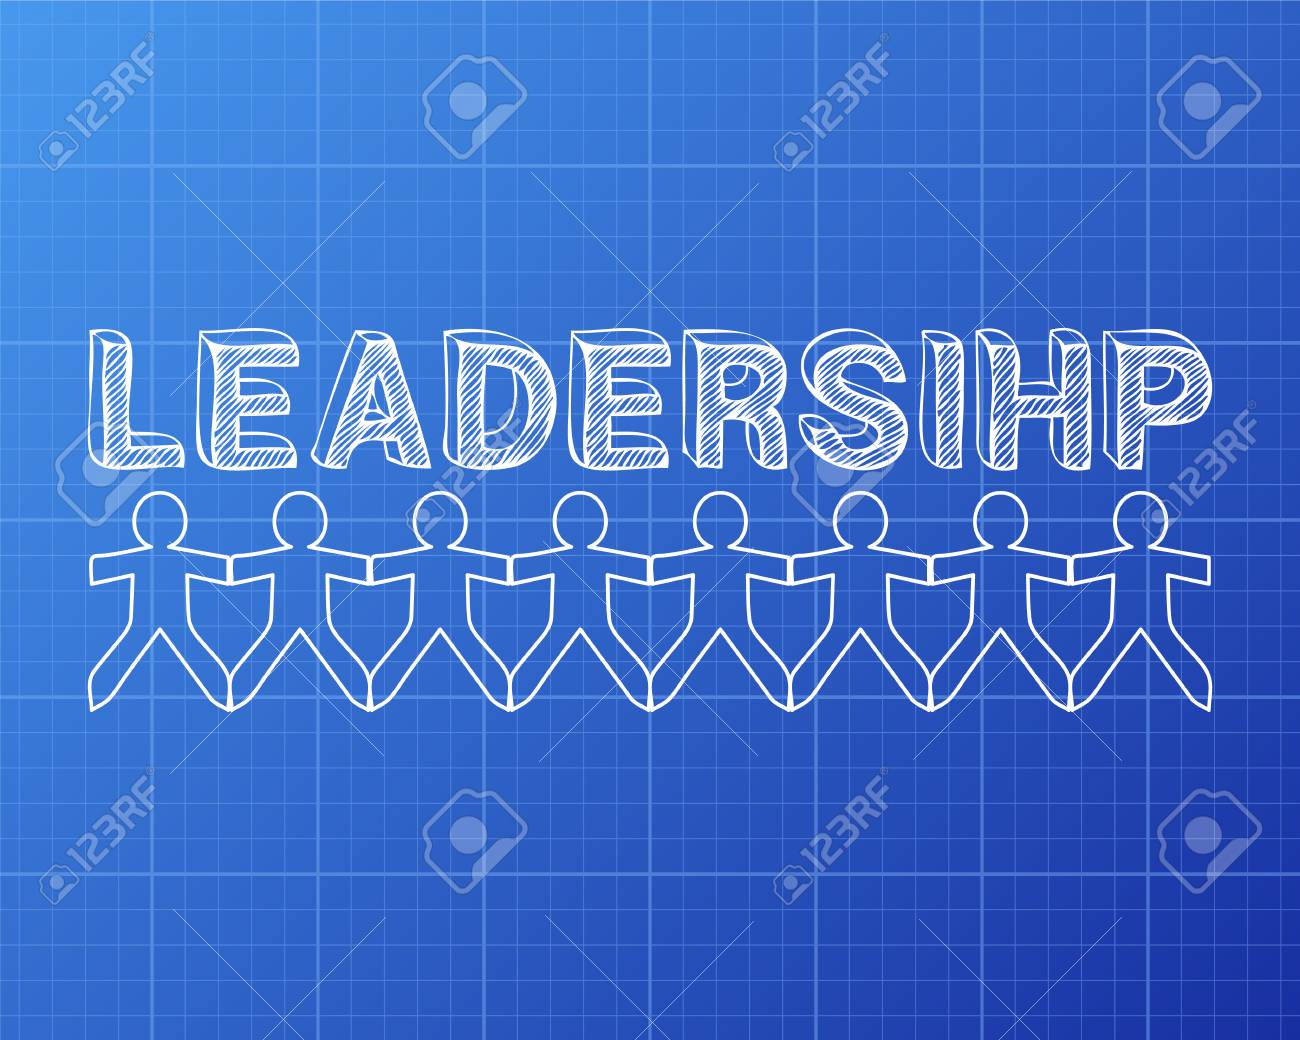 Leadership text hand drawn with paper people on blueprint background leadership text hand drawn with paper people on blueprint background stock vector 78767589 malvernweather Images